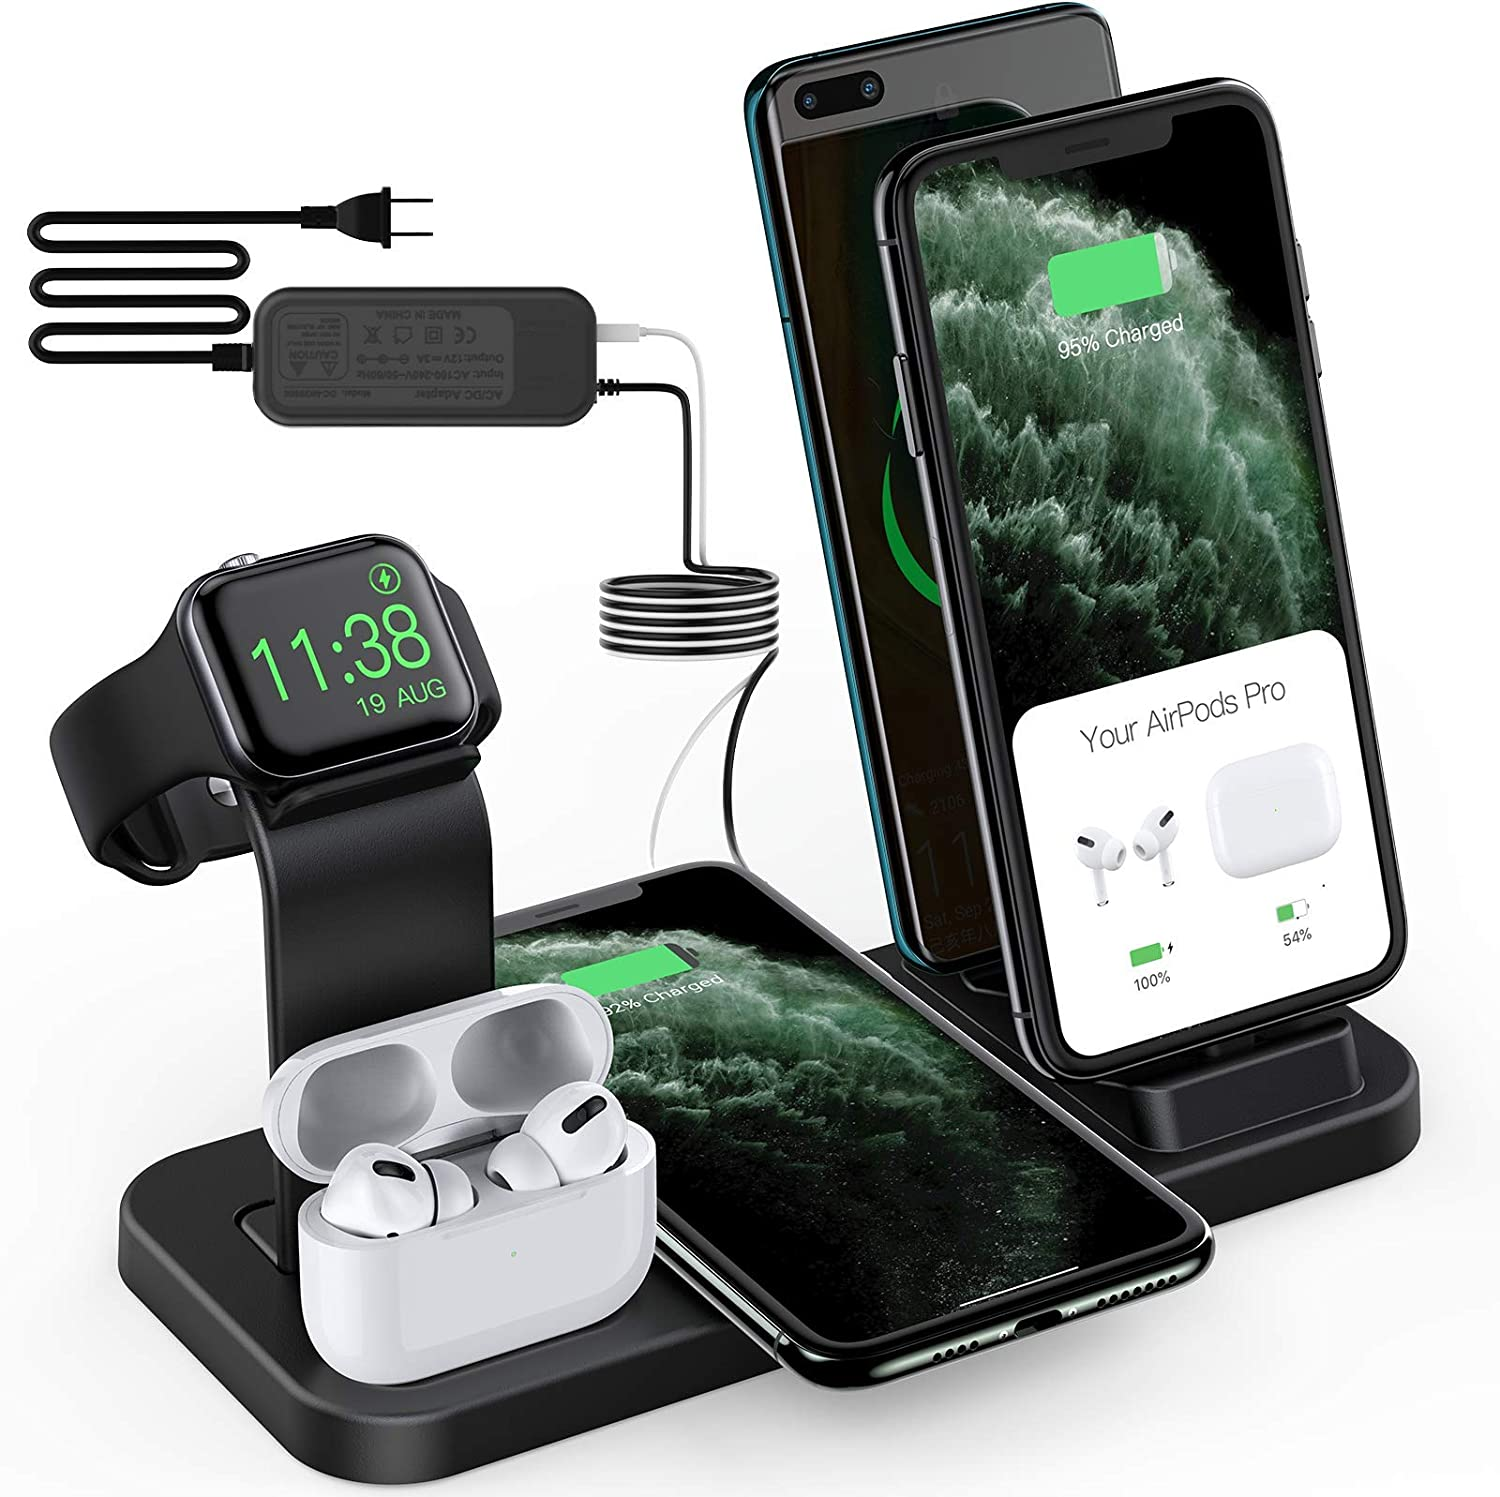 Sixmas Wireless Charger, 5 in 1 Wireless Charging Station for iPhone Samsung, USB C Dock Station for Android Phones, Charging Stand for Apple Watch SE and Series 6 5 4 3 2 1 AirPods Pro 2 1